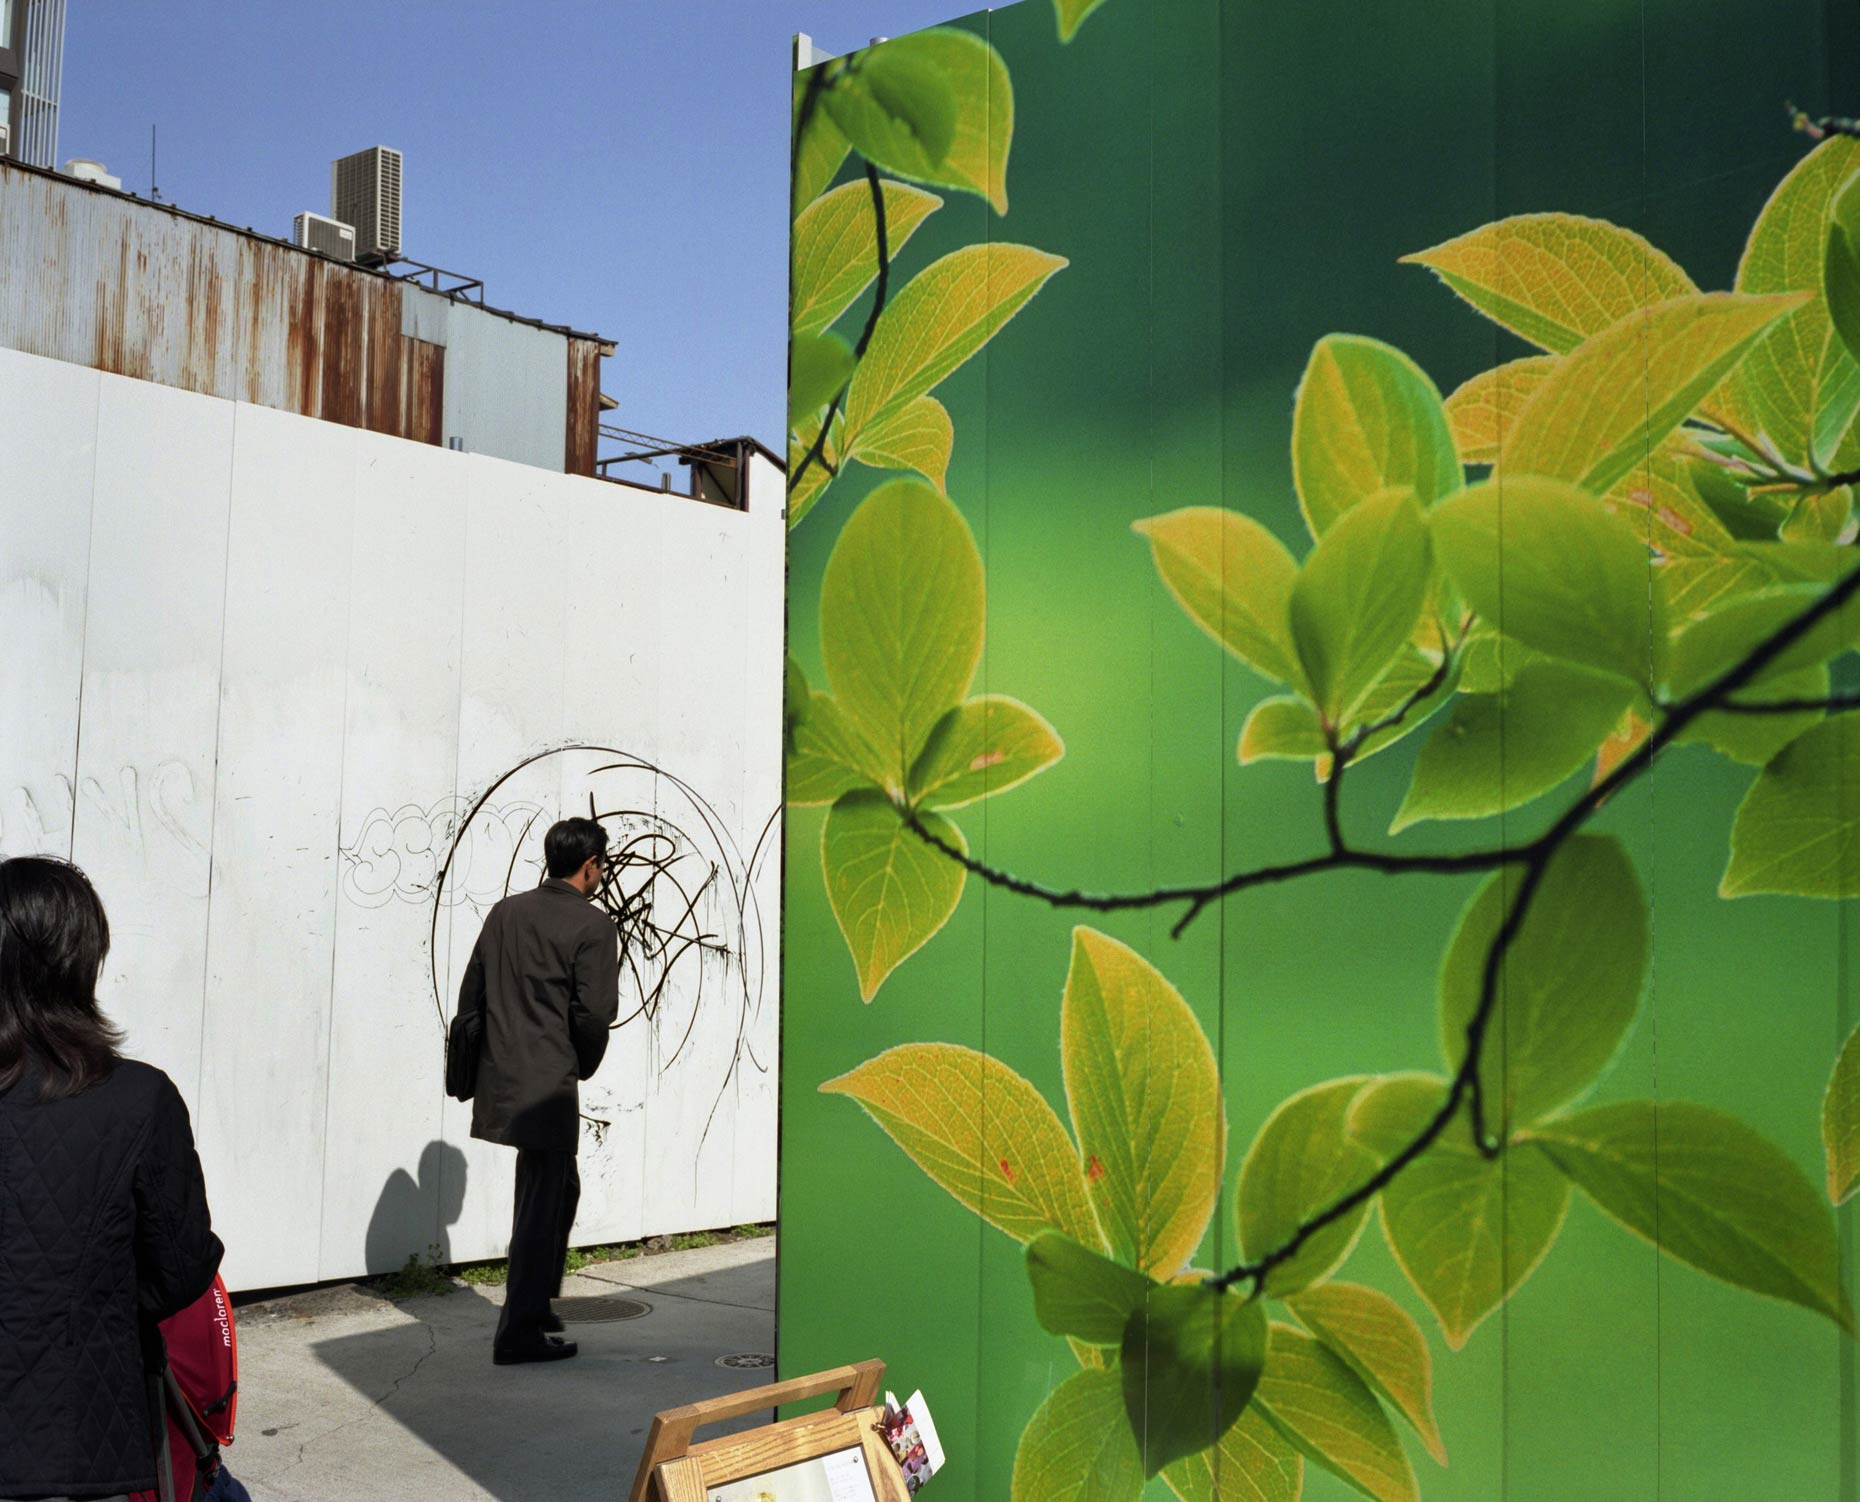 Billboards depicting scenes of nature, Tokyo, Japan.